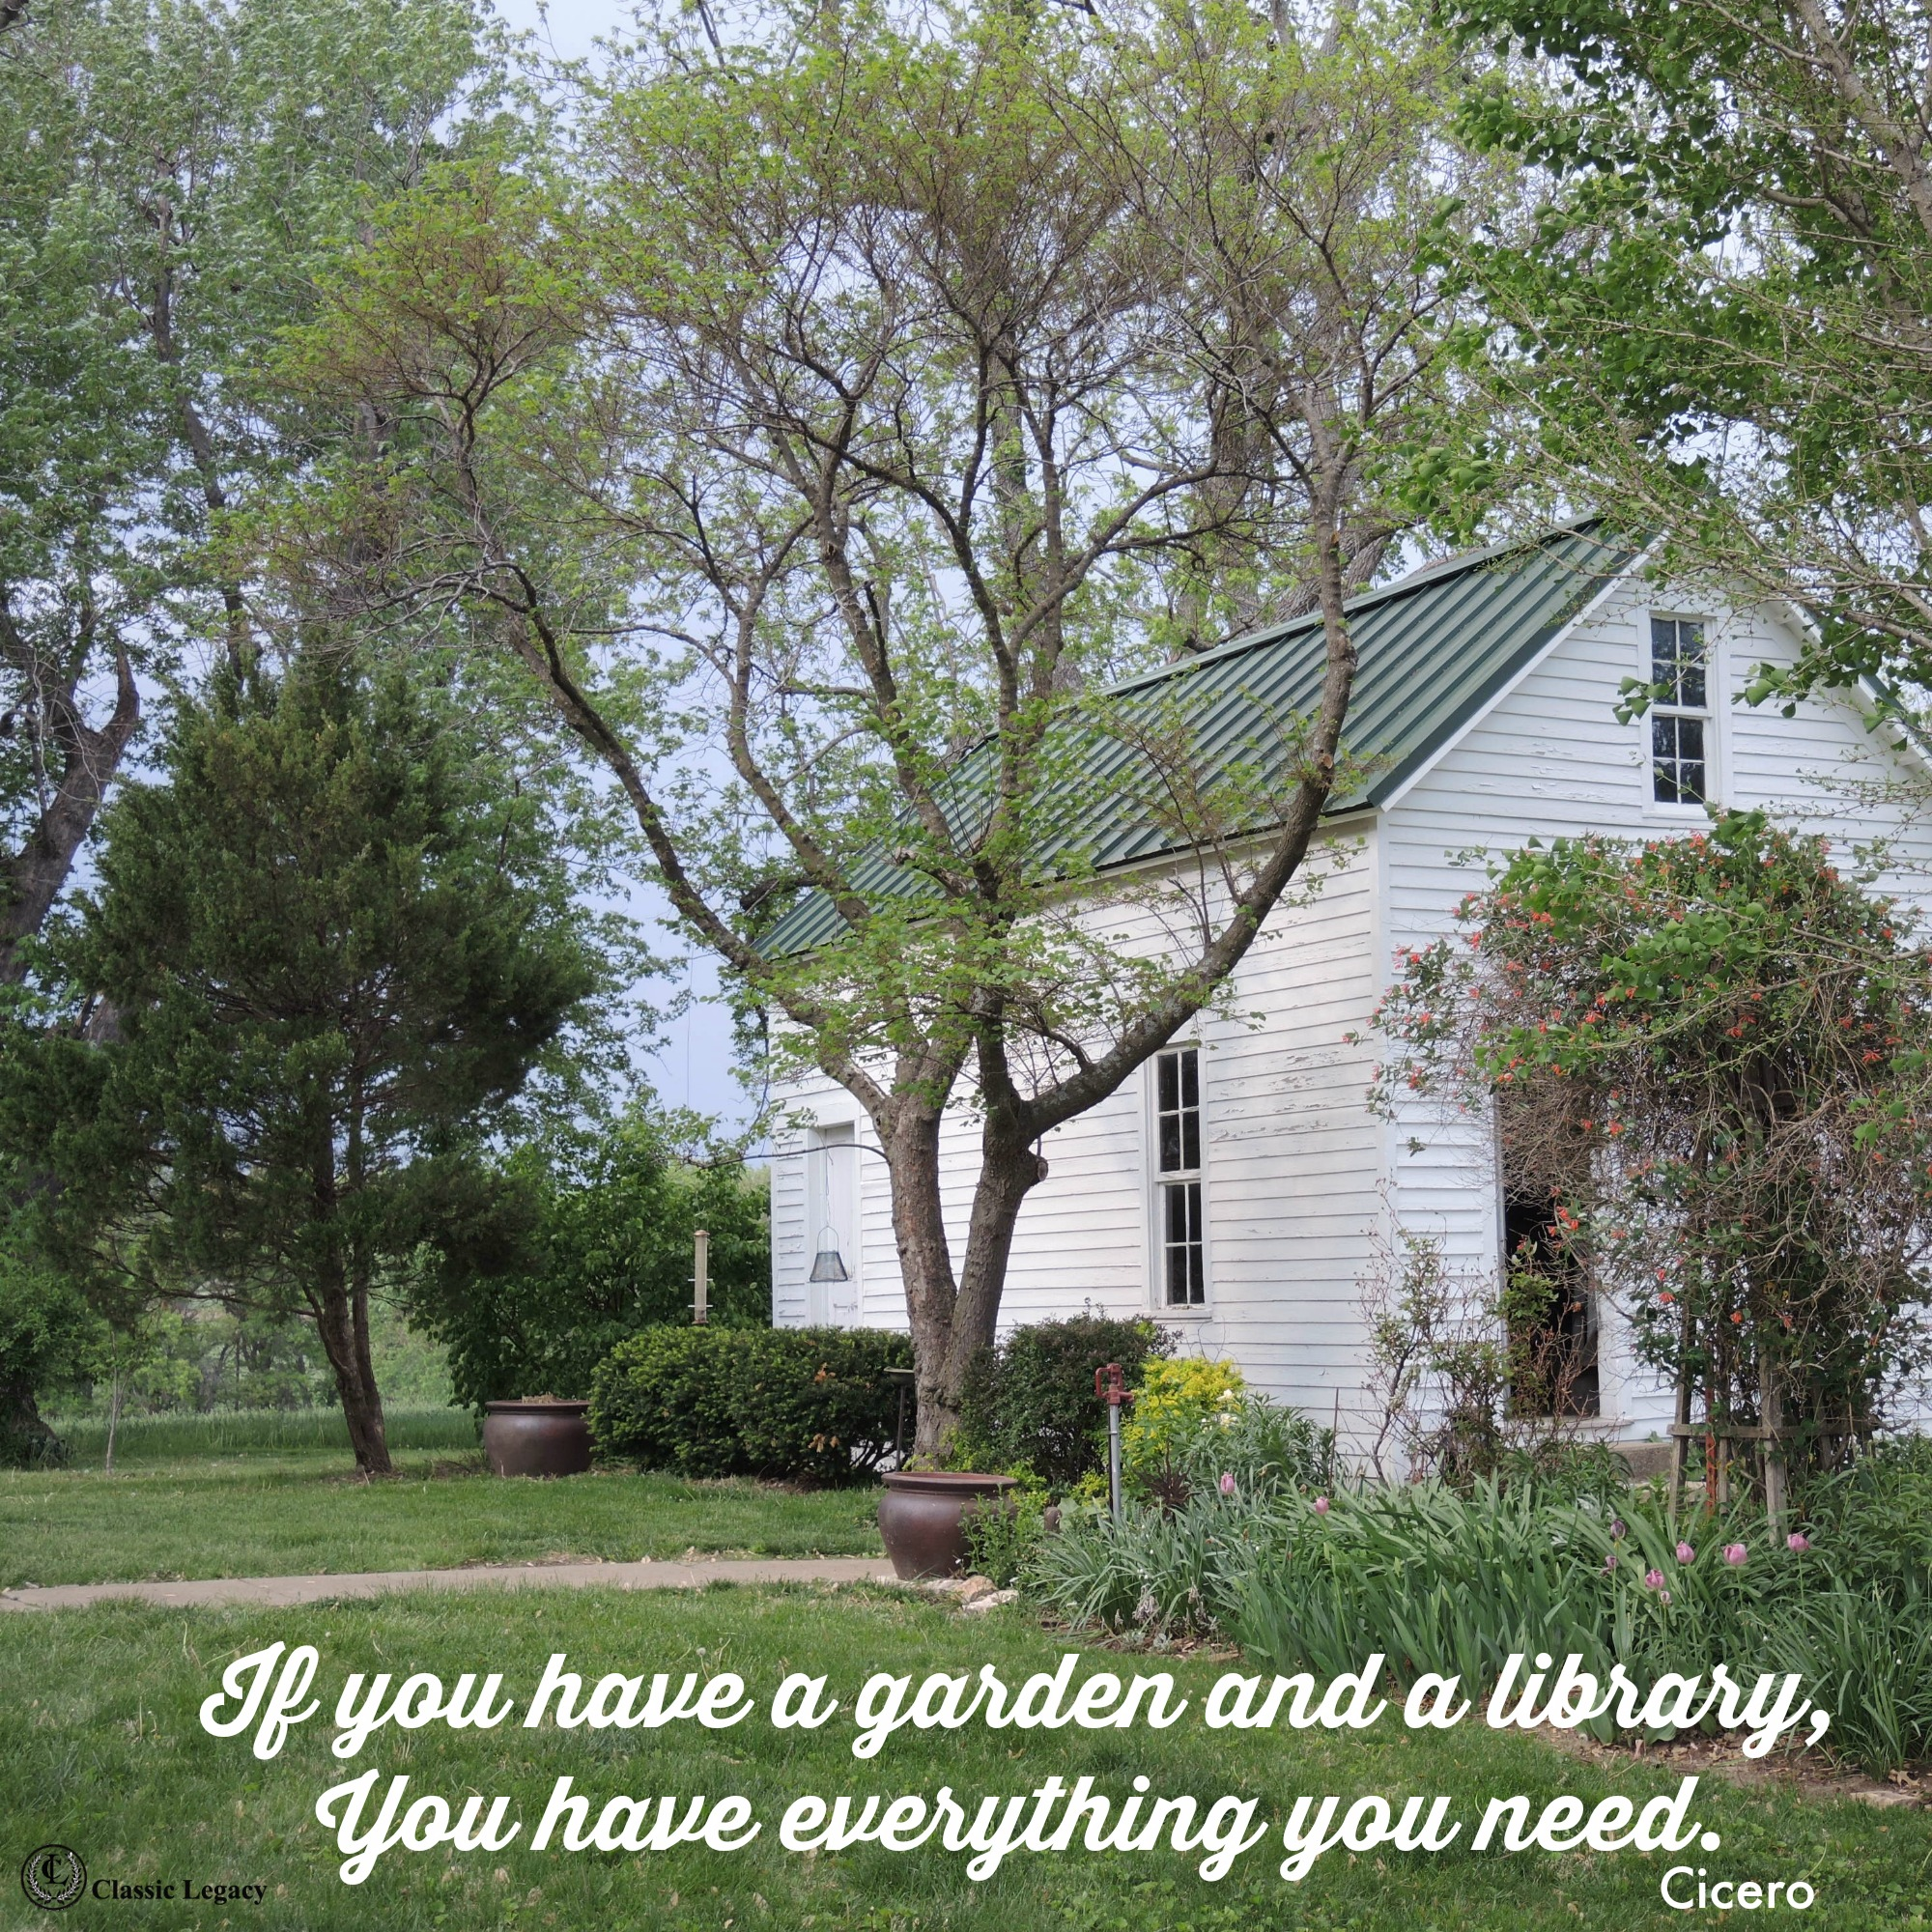 Quote If you have a garden and a library you have everything you need.